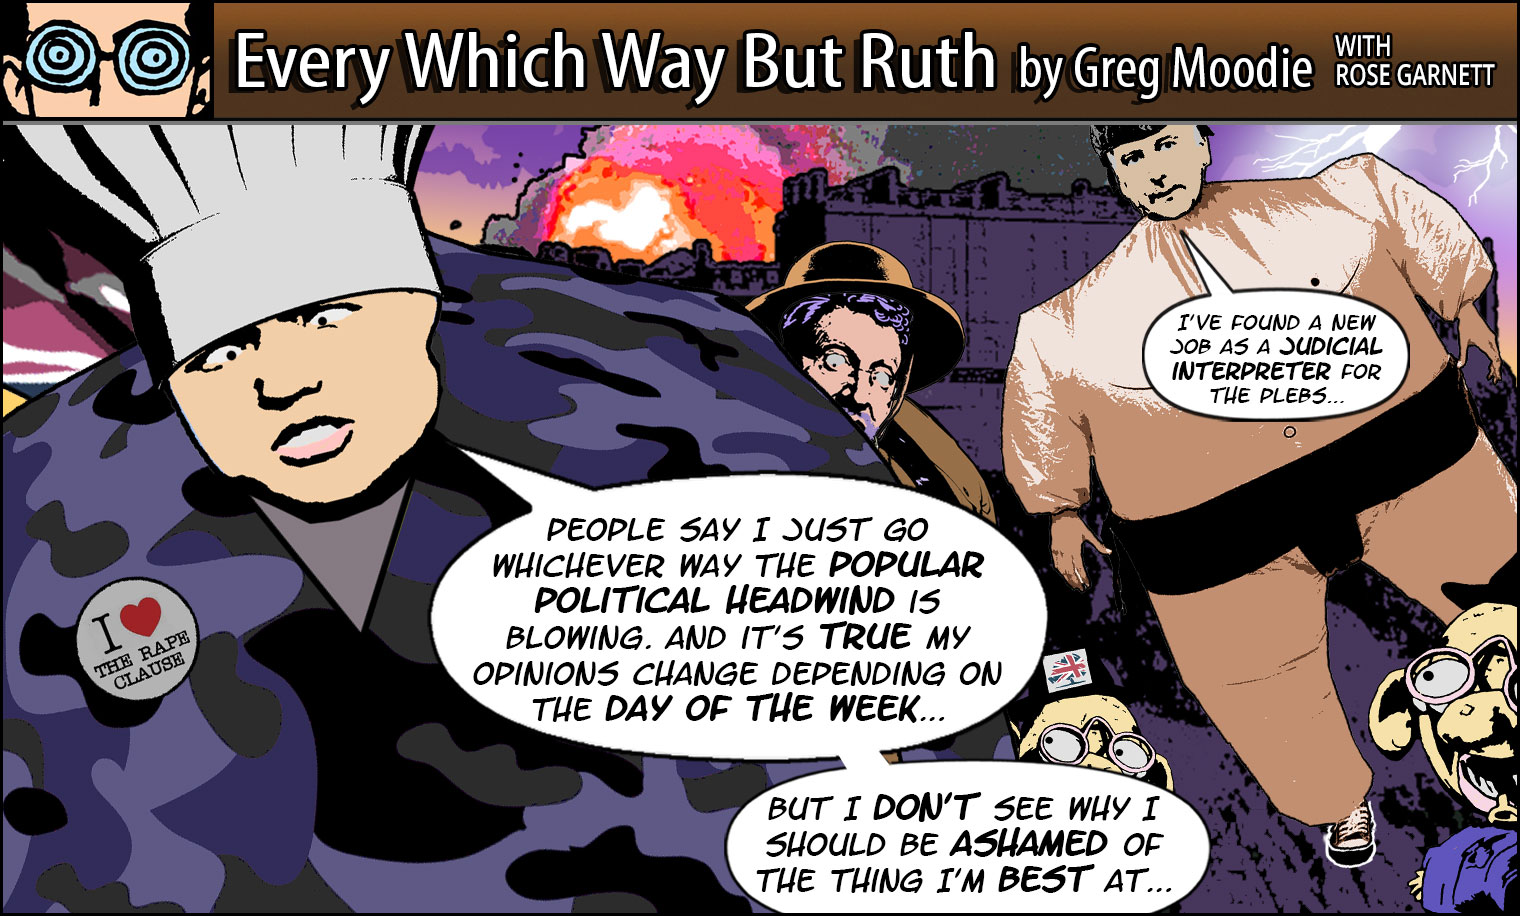 Every Which Way But Ruth